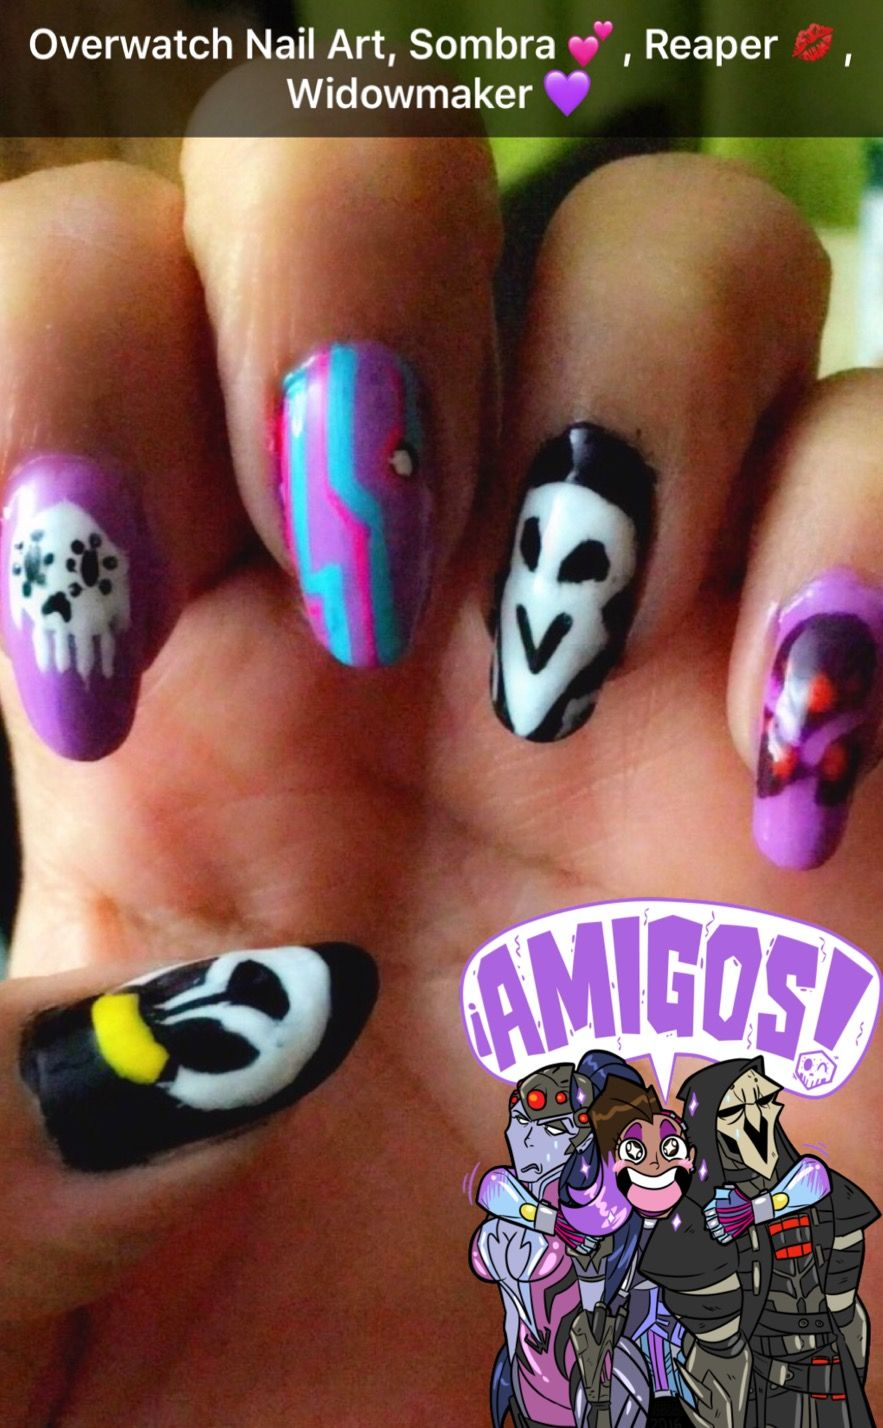 Overwatch Team Talon Nail Art, Sombra, Reaper and Widowmaker ...